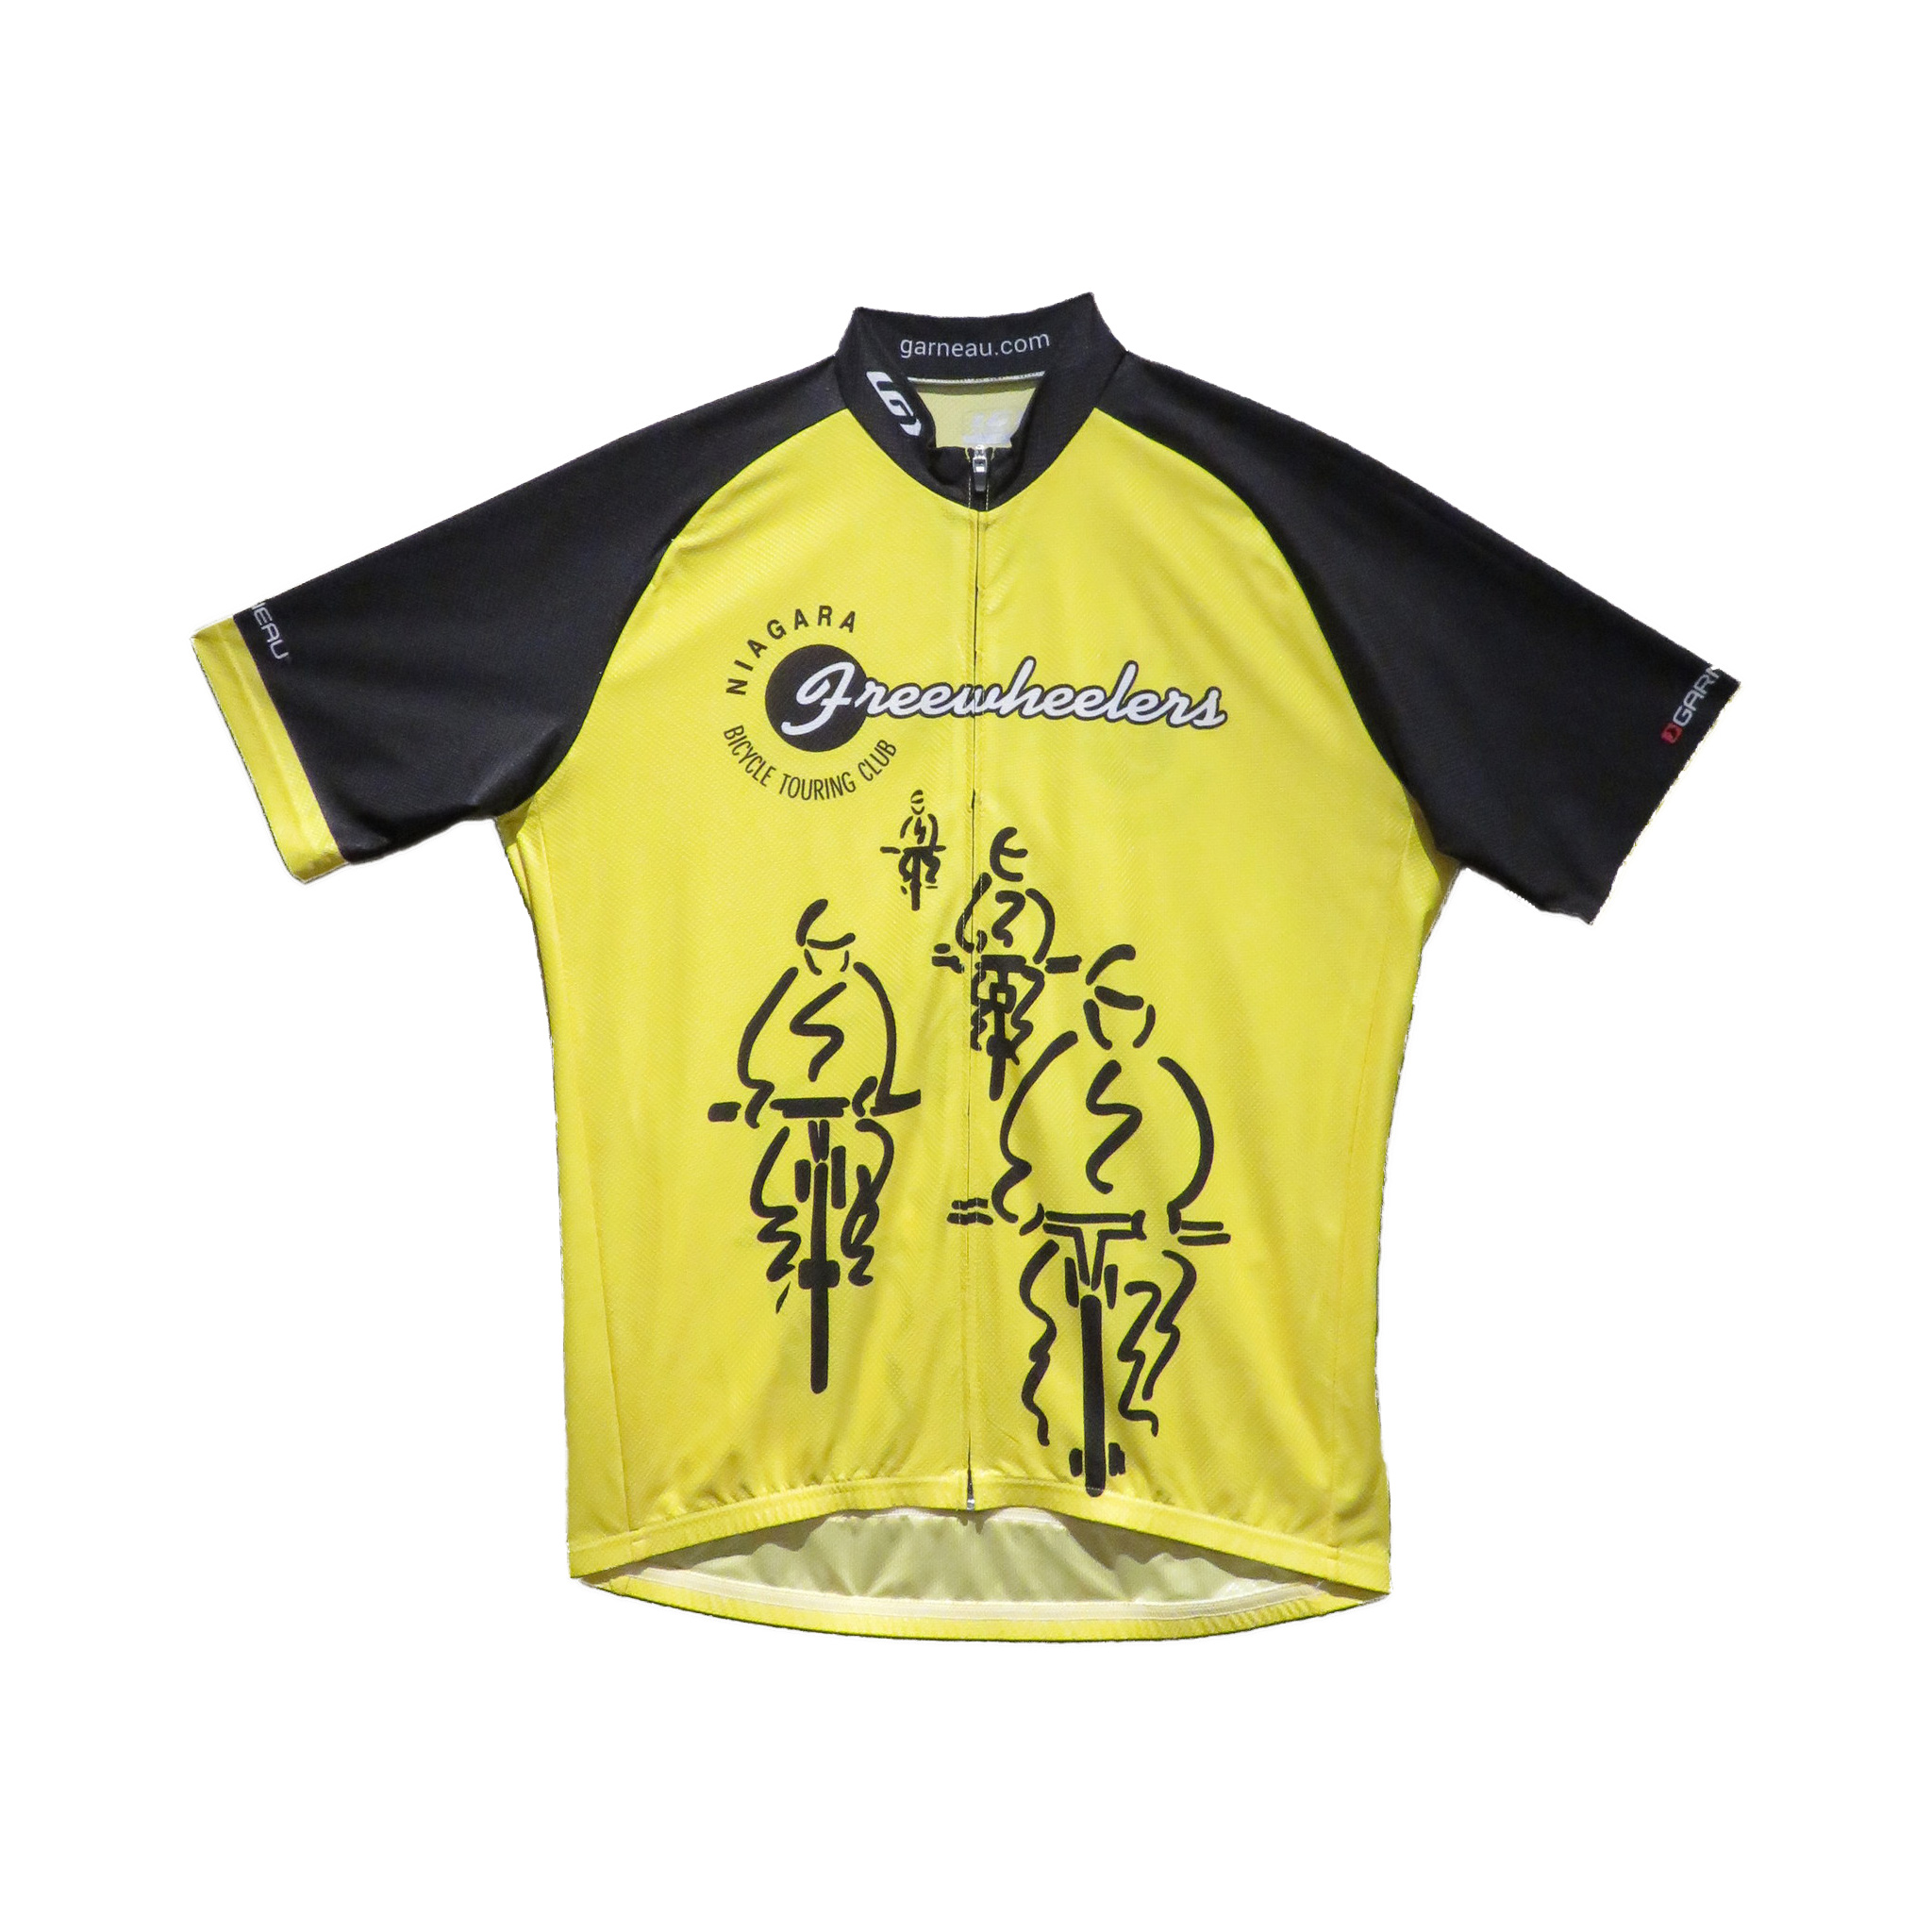 Men's and Women's Classic Jersey